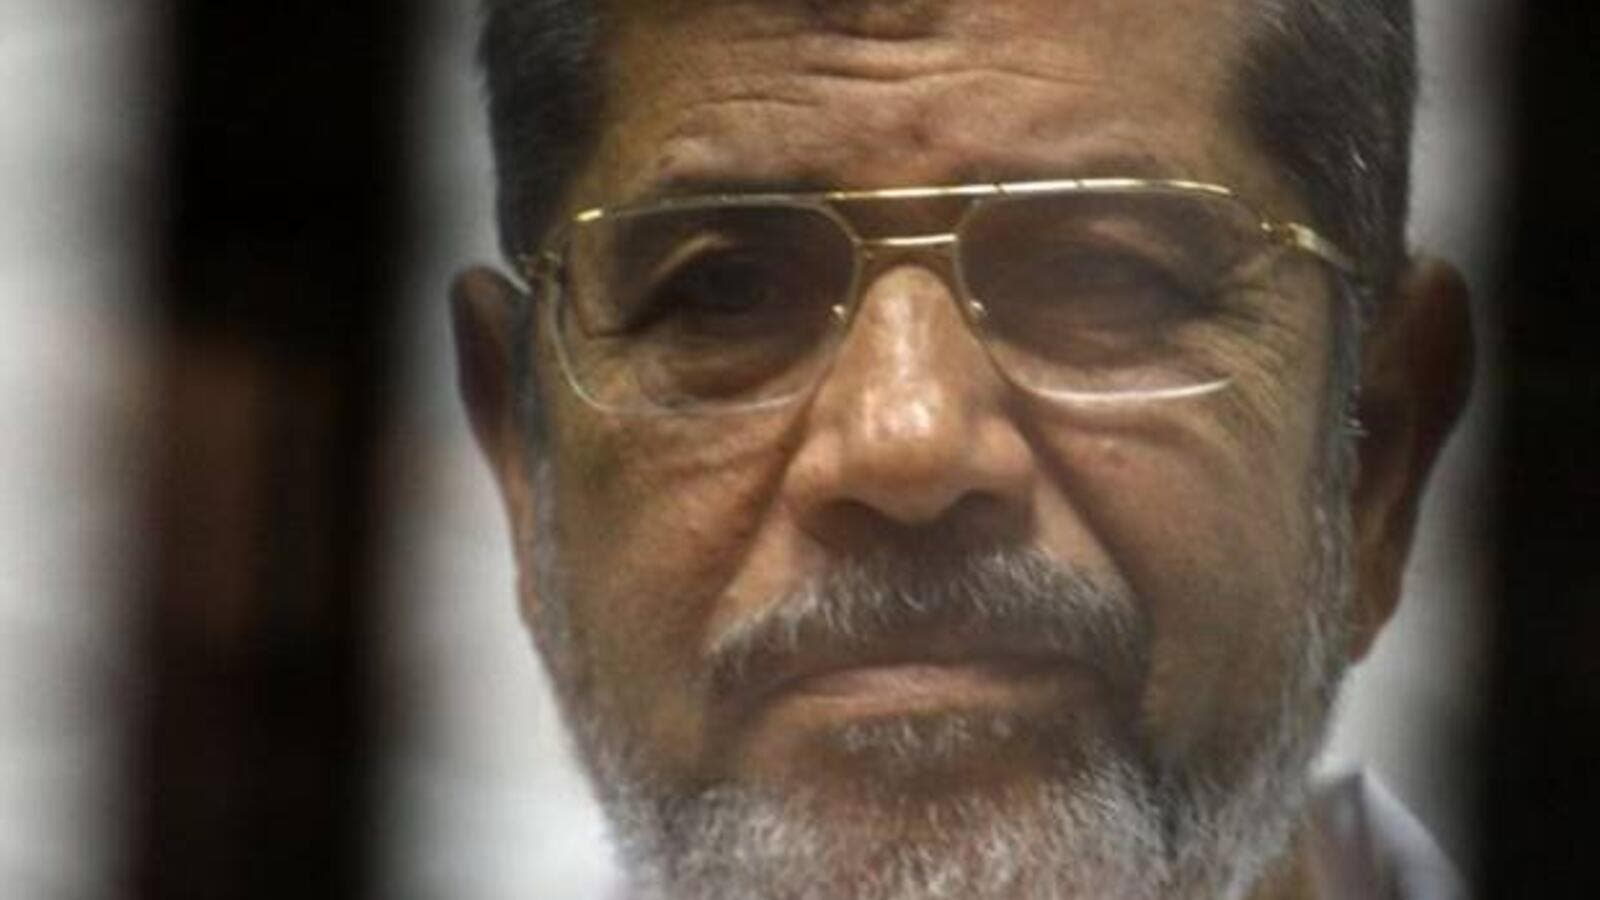 A court in Cairo postponed the final decision of the former Egyptian president's death sentence until June 16. (AFP/File)